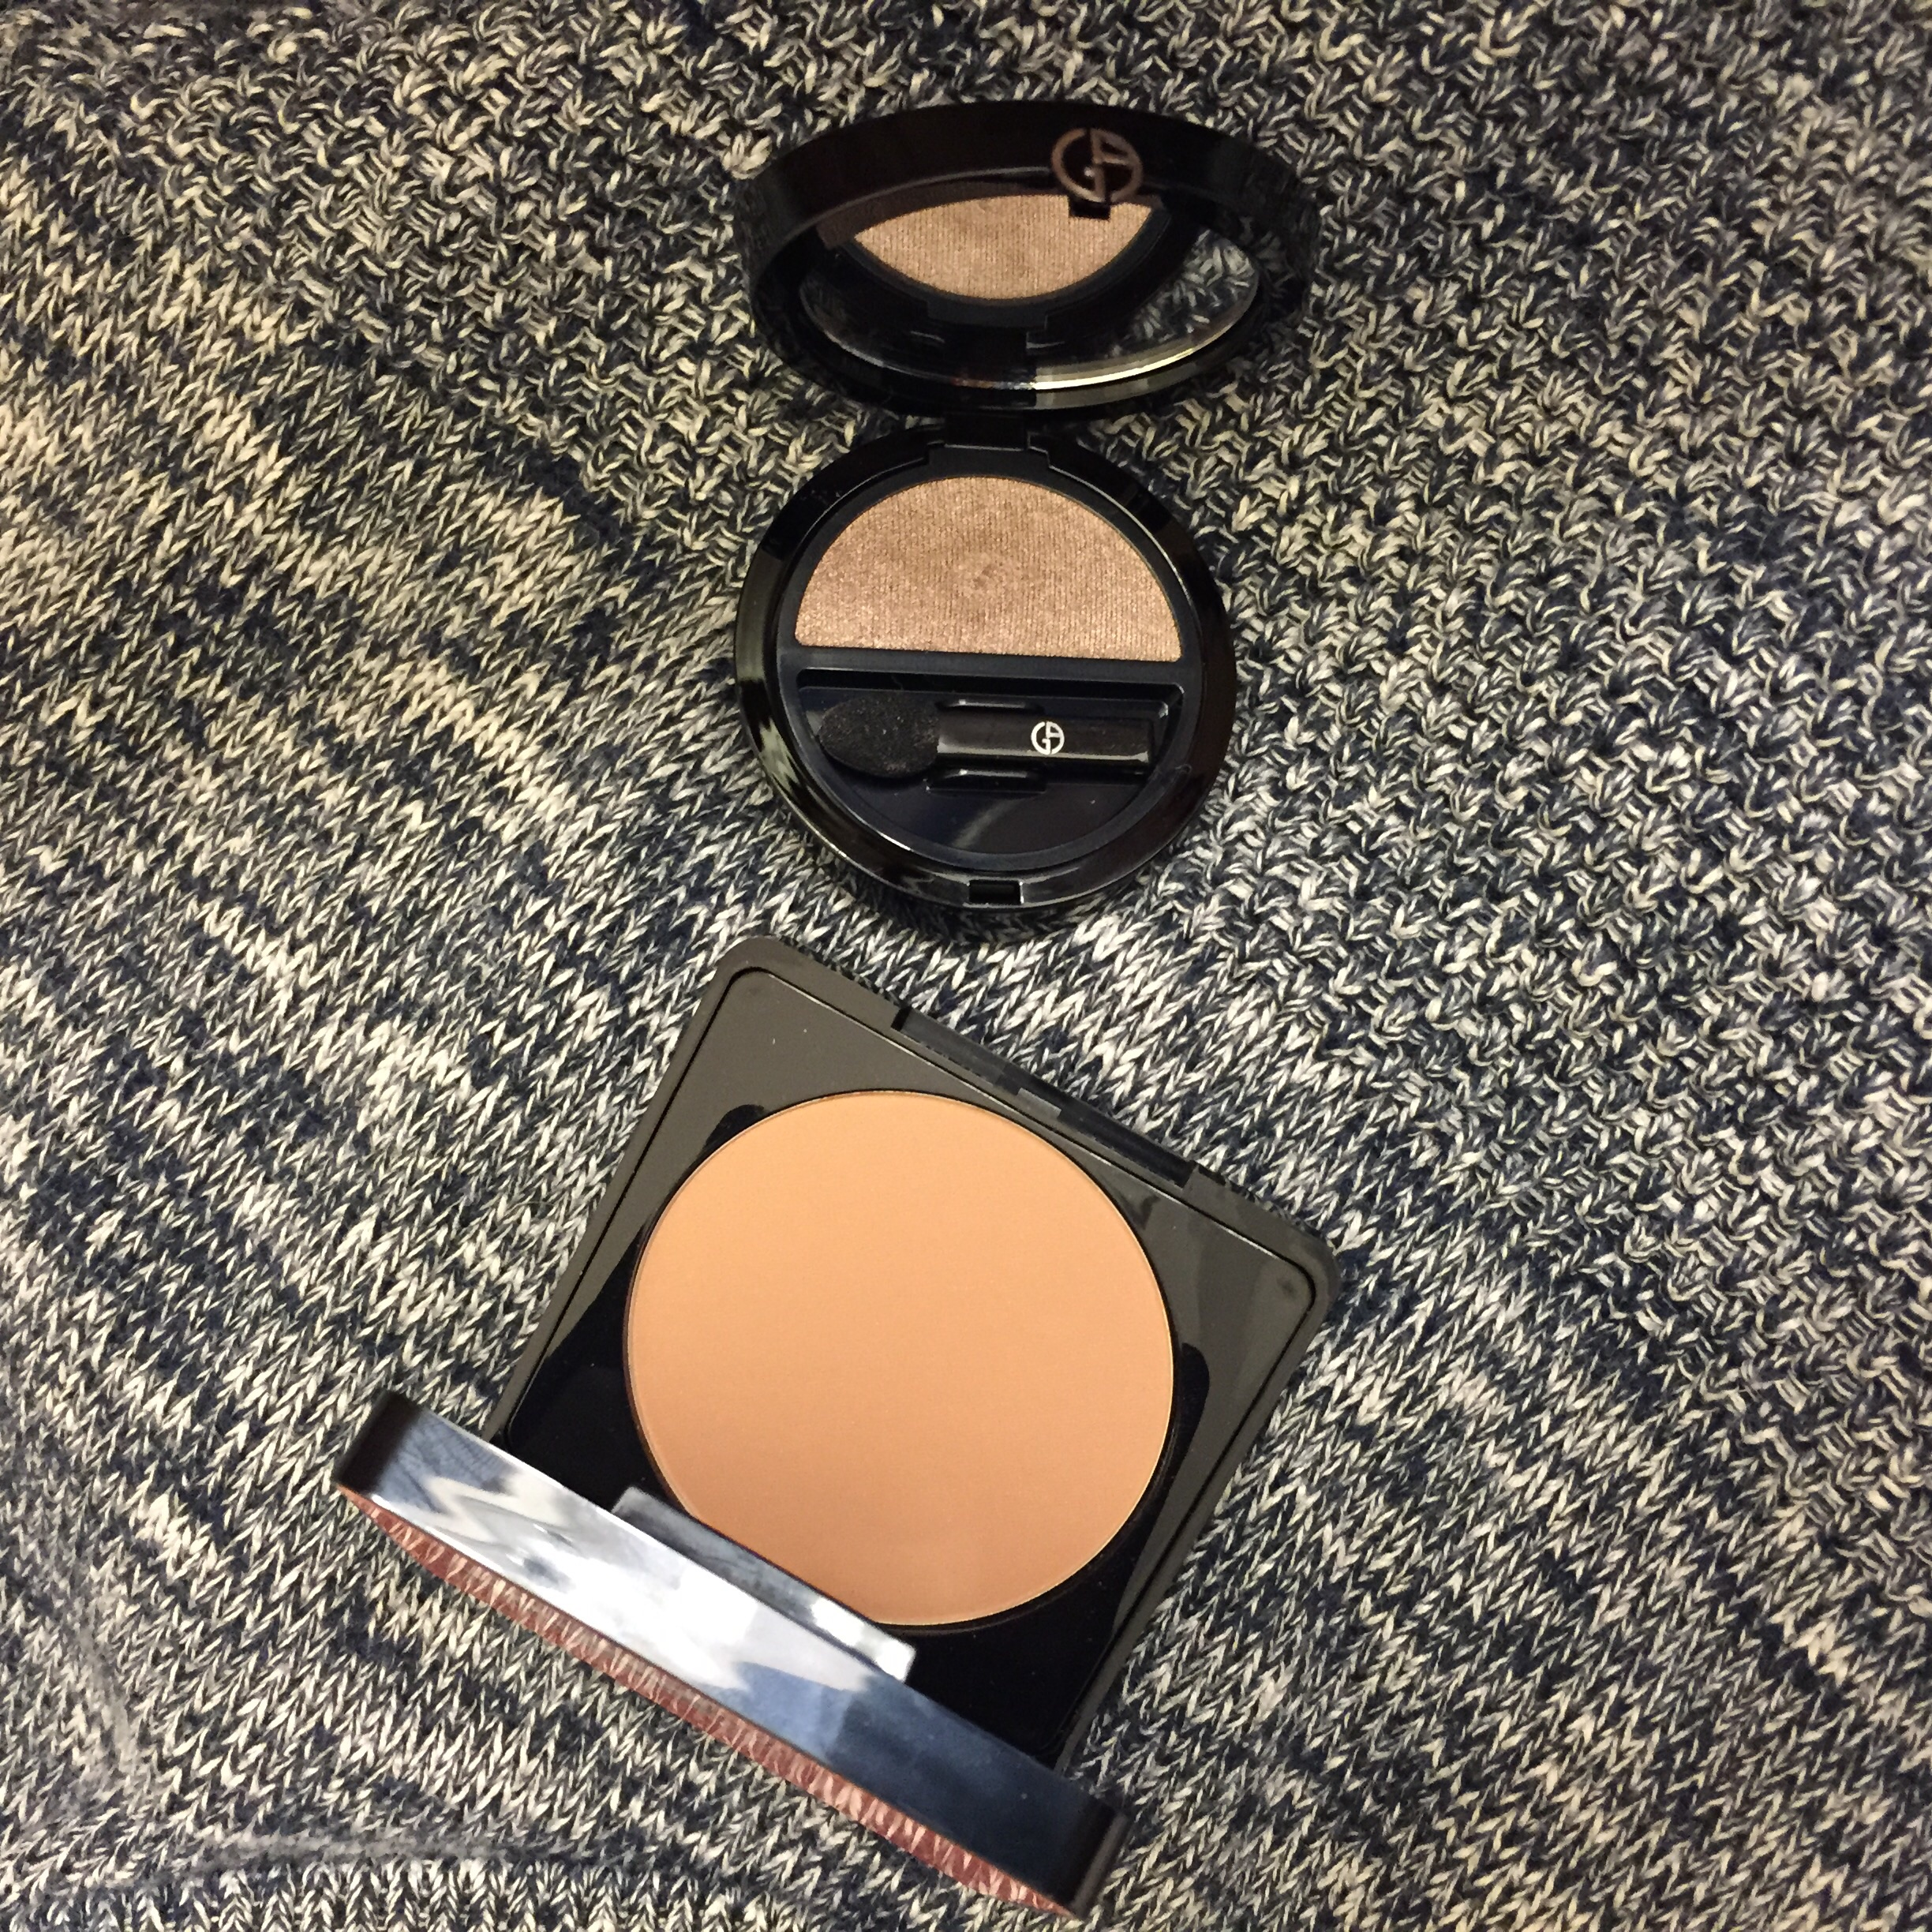 Day 2: Rouge Bunny Rouge Bronzer and Armani Single Eyeshadow in #9 Tadzio